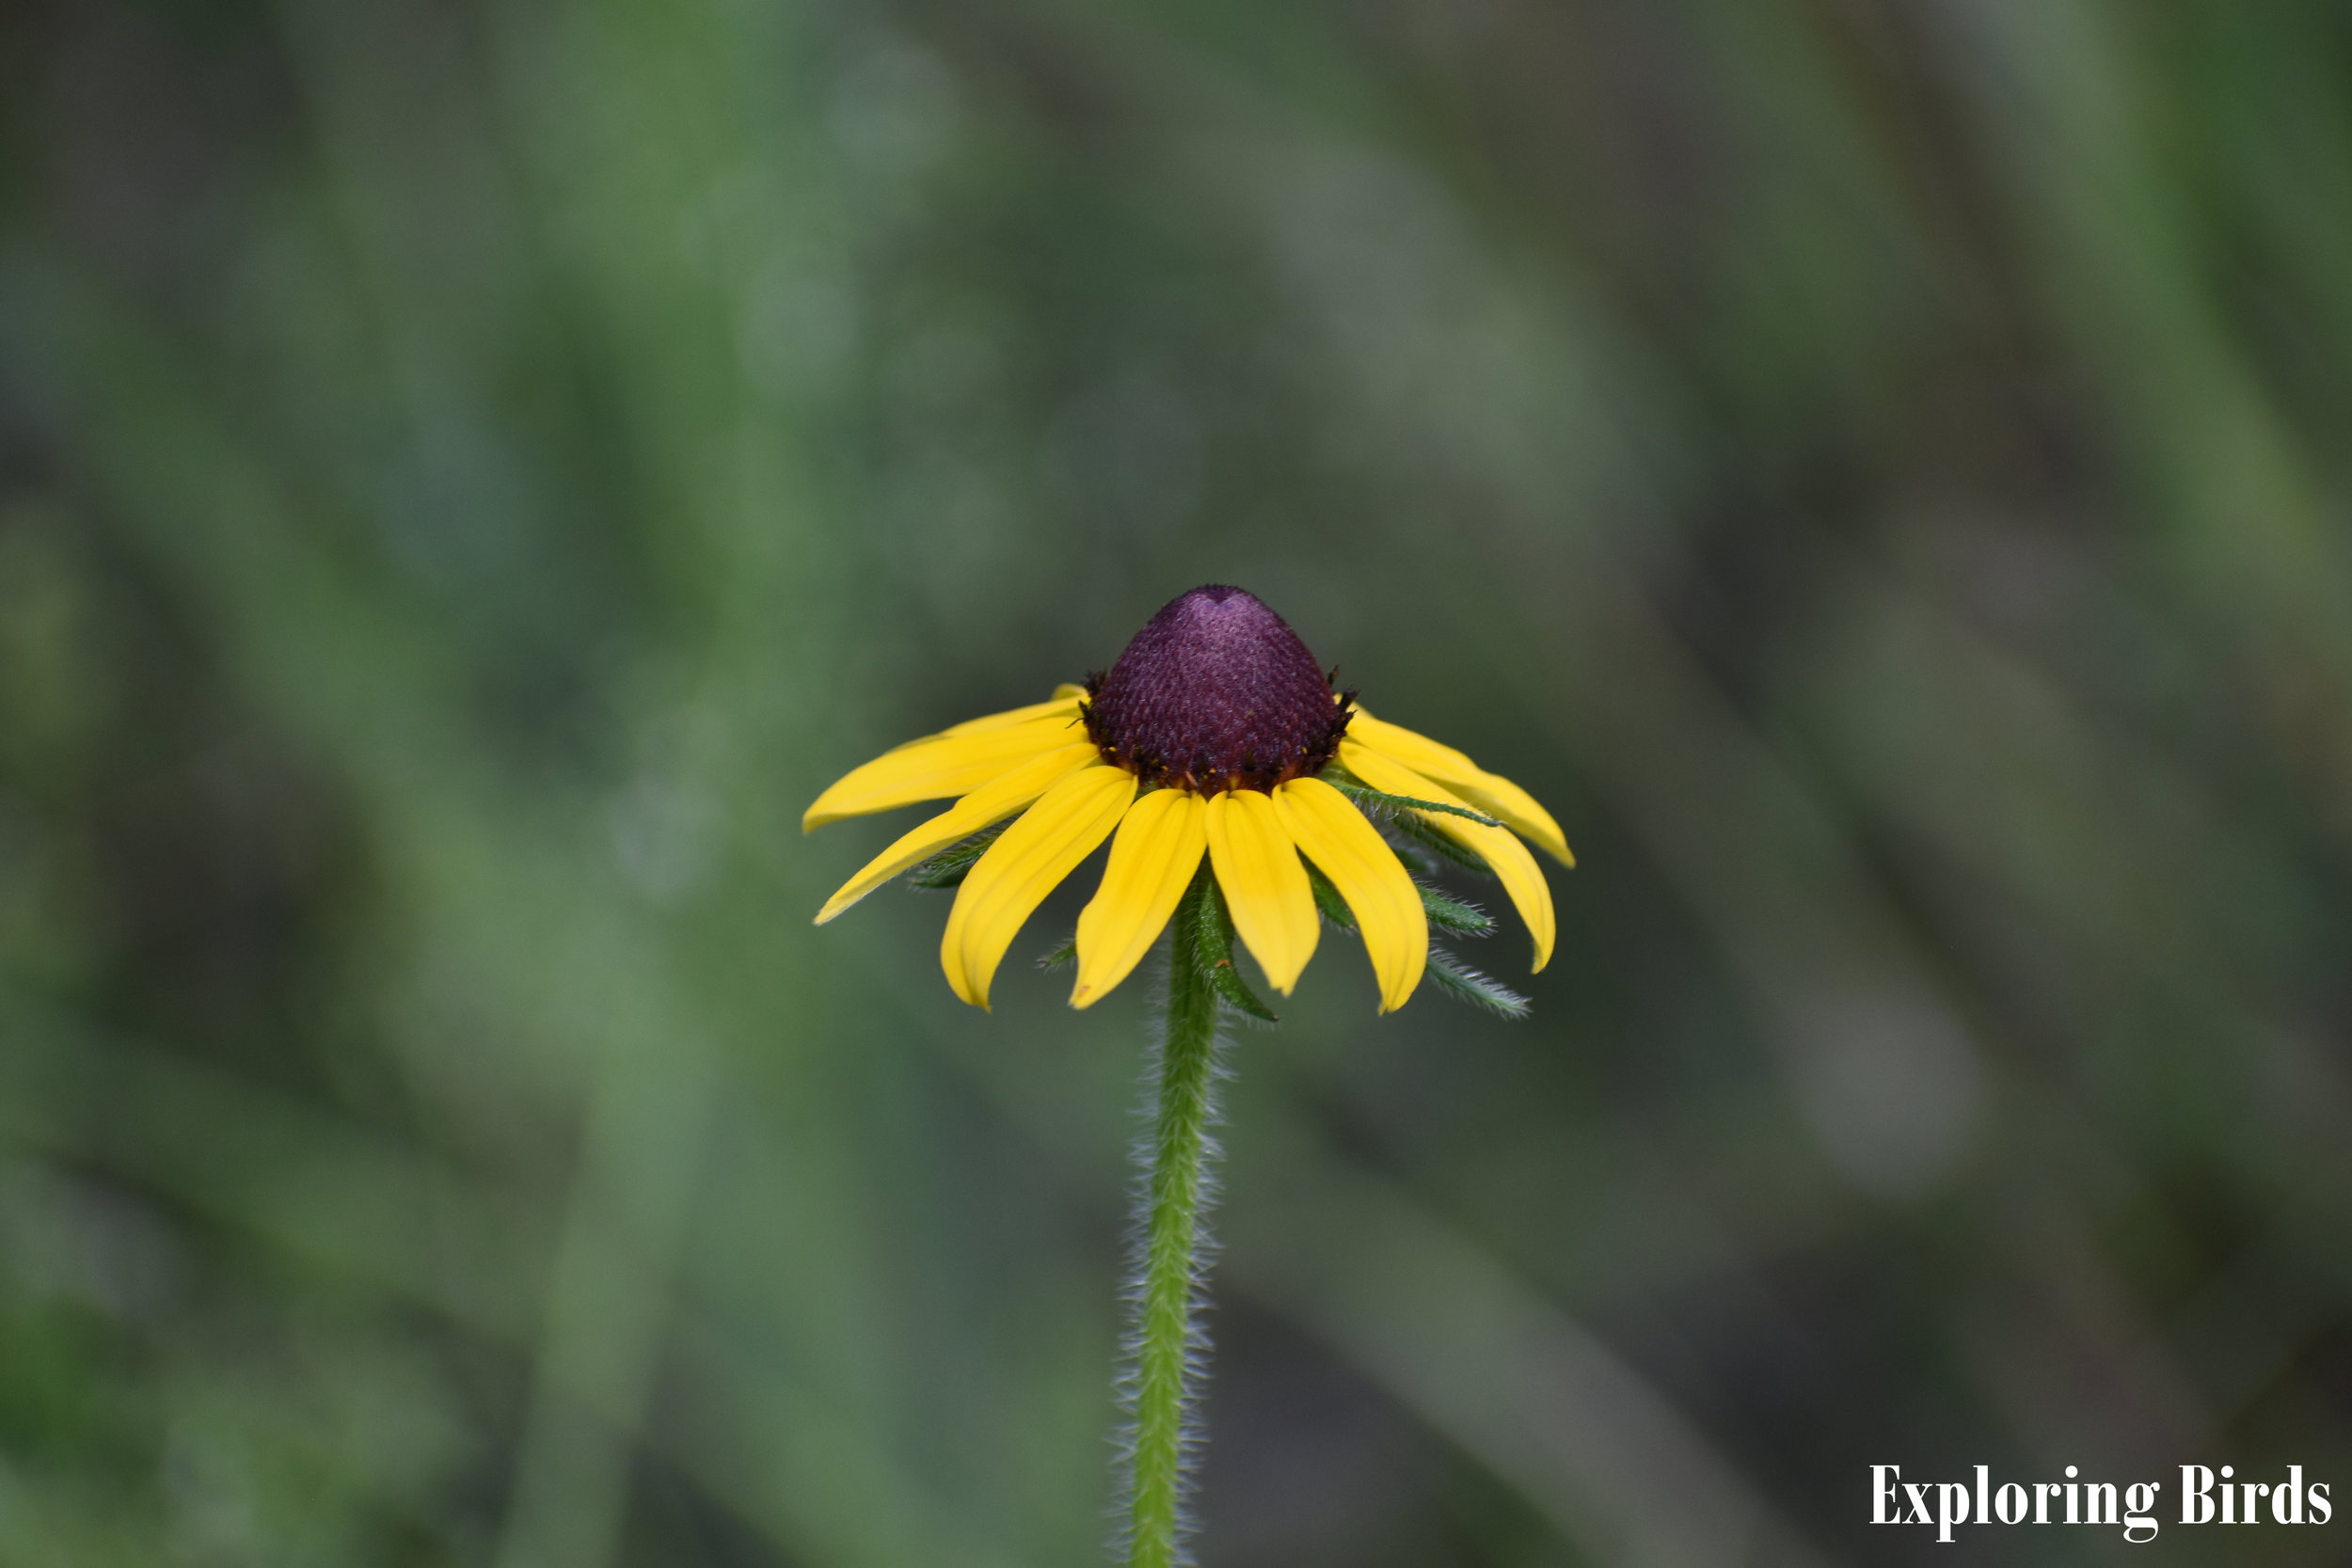 Black-Eyed Susan is a flower that attracts birds